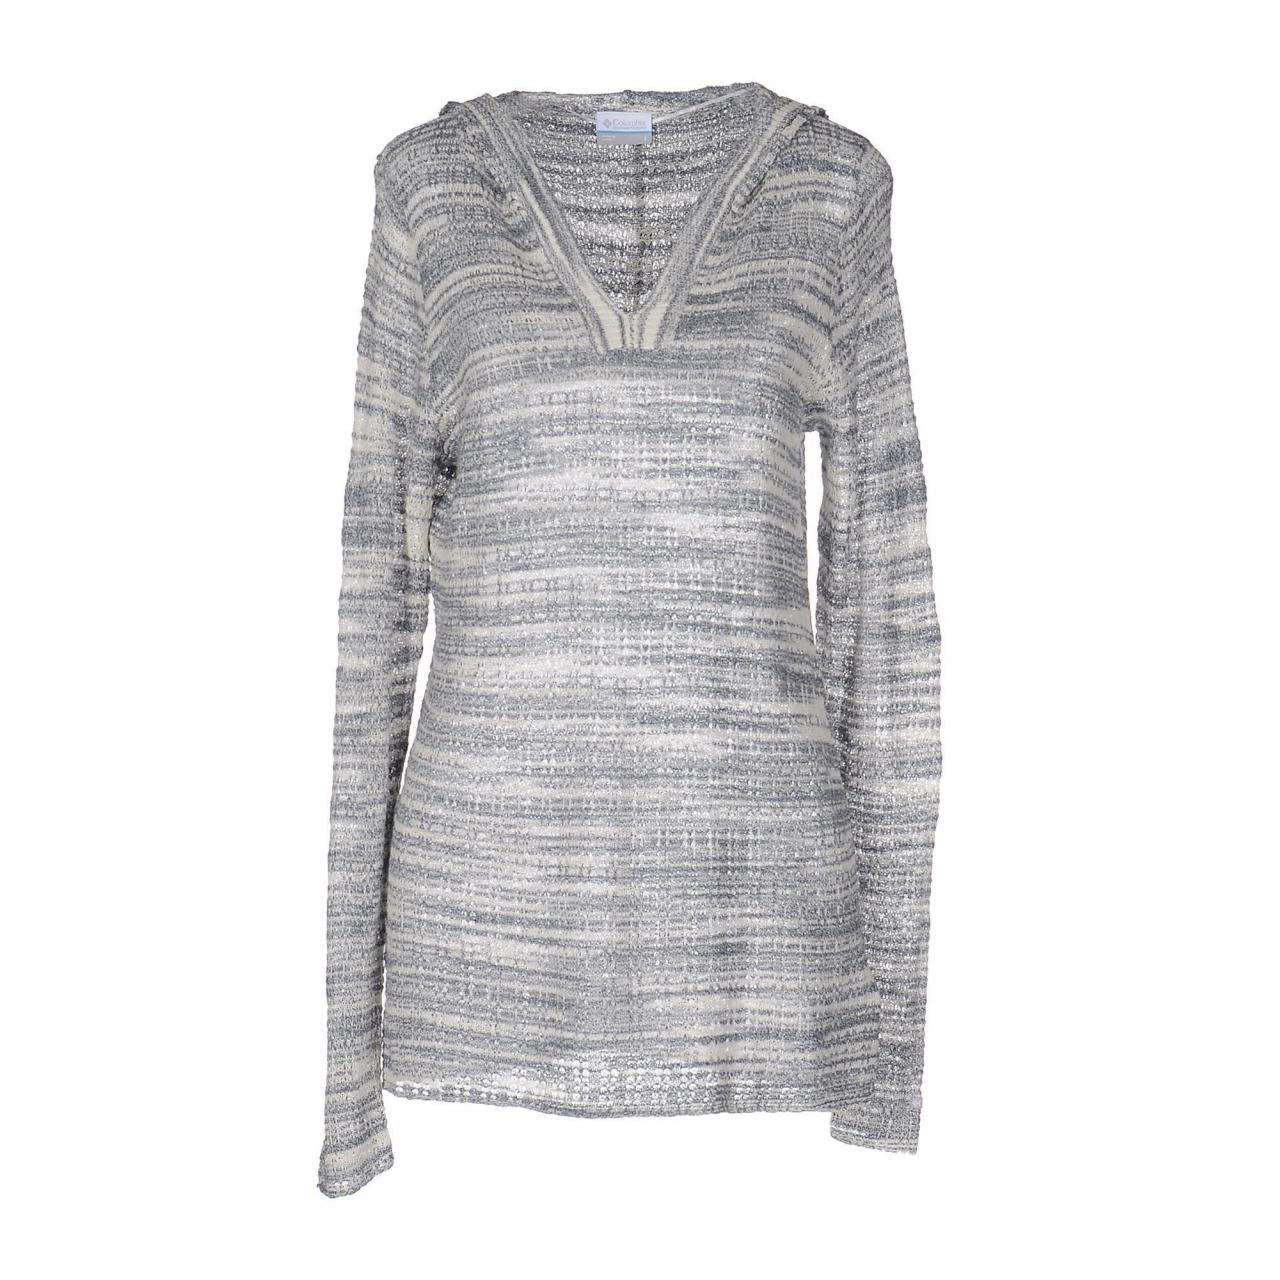 COLUMBIA women Jumpers and Sweatshirts Blue,cheap columbia outerwear,entire collection